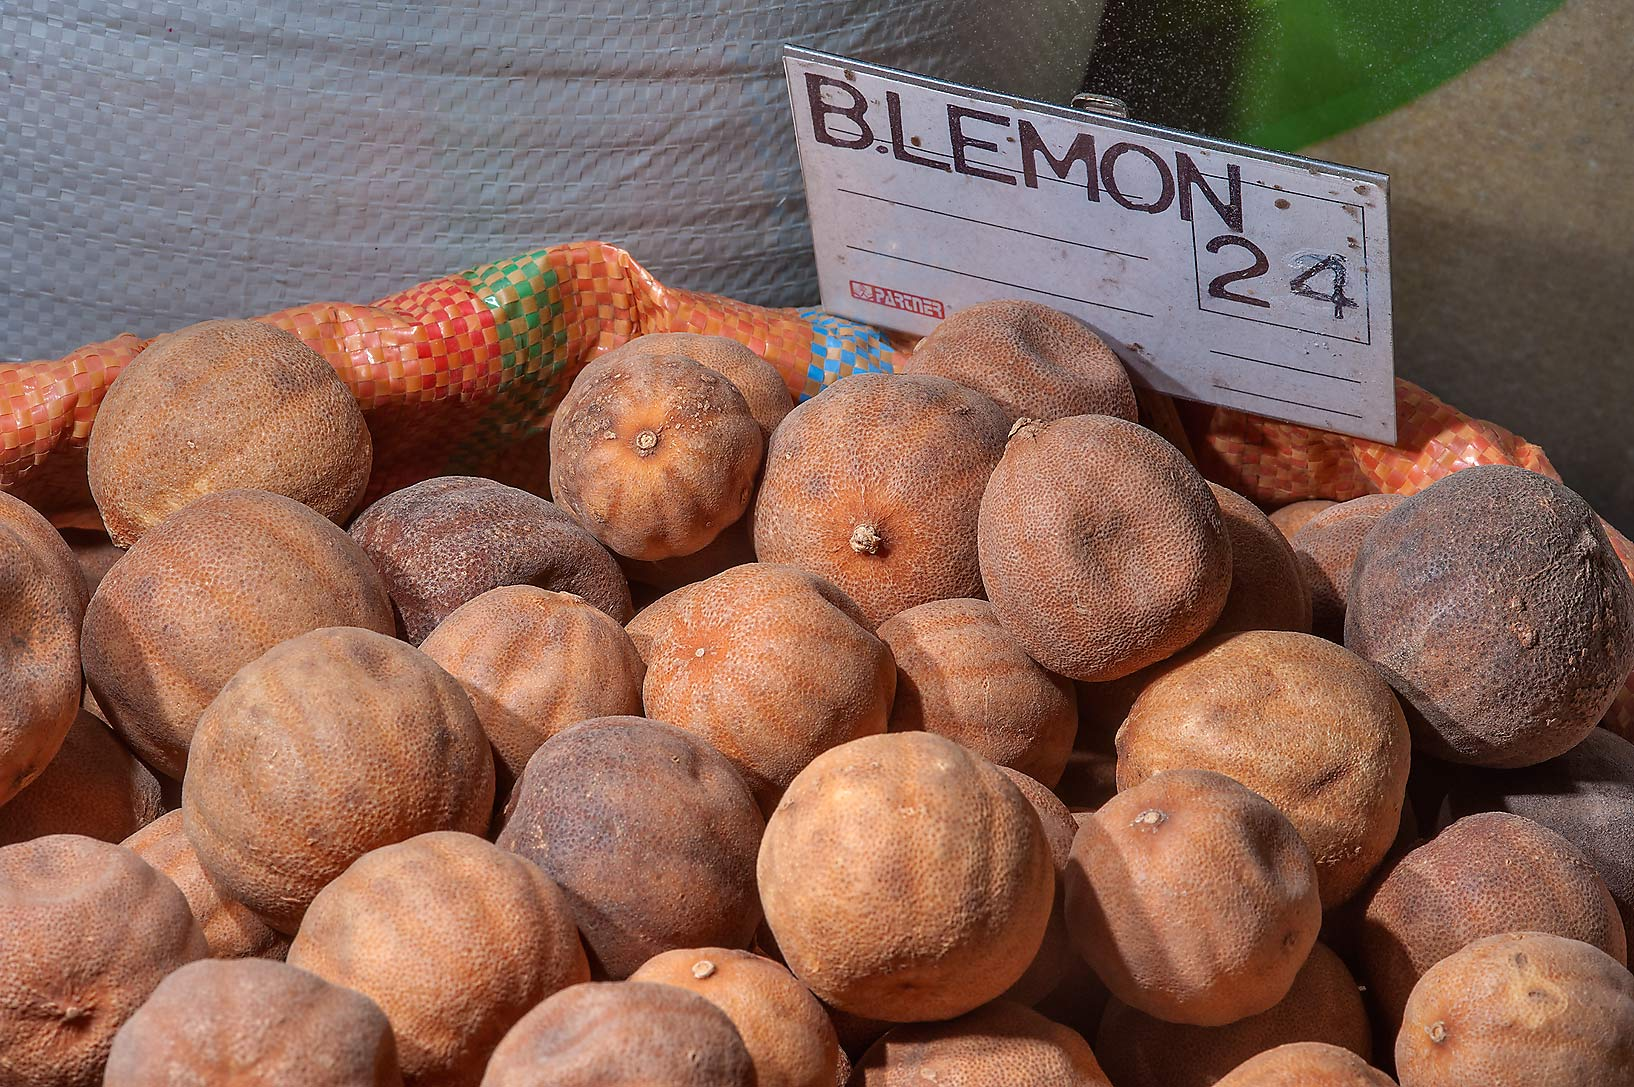 Dry lemons Blemon for sale in spice section of Souq Waqif (Old Market). Doha, Qatar